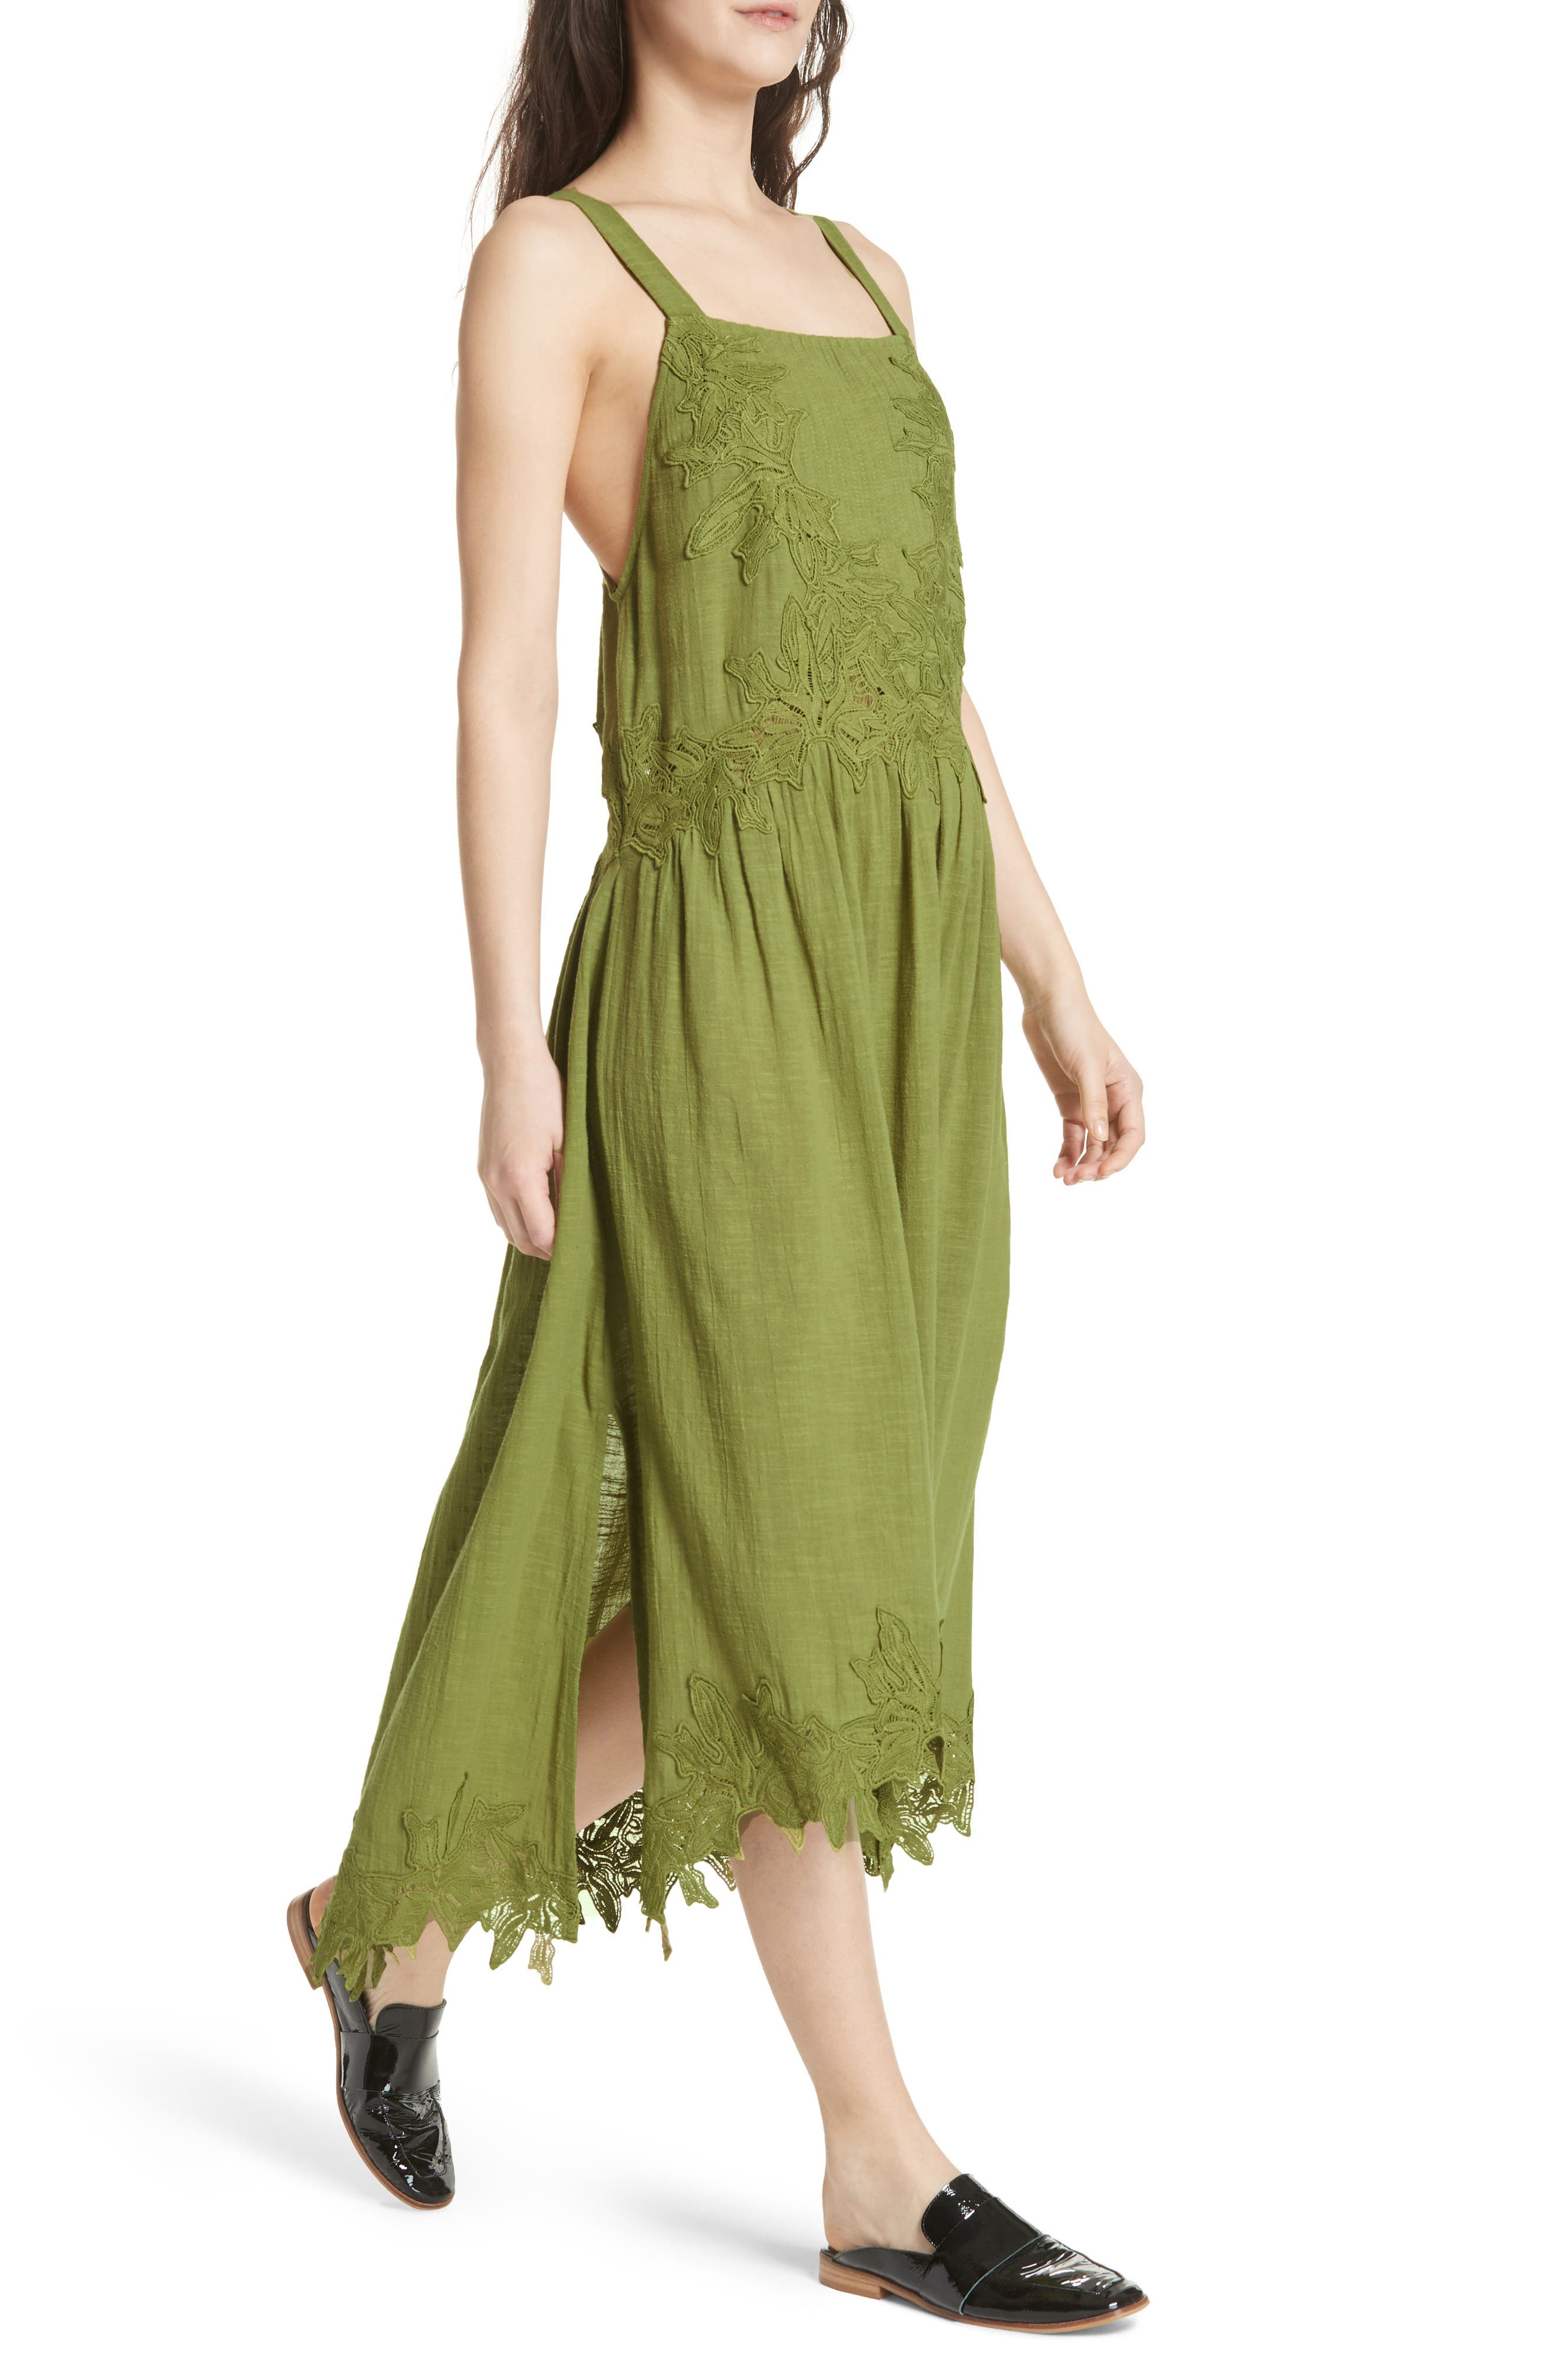 In Your Arms Appliqué Maxi Dress,                             Alternate thumbnail 4, color,                             Green